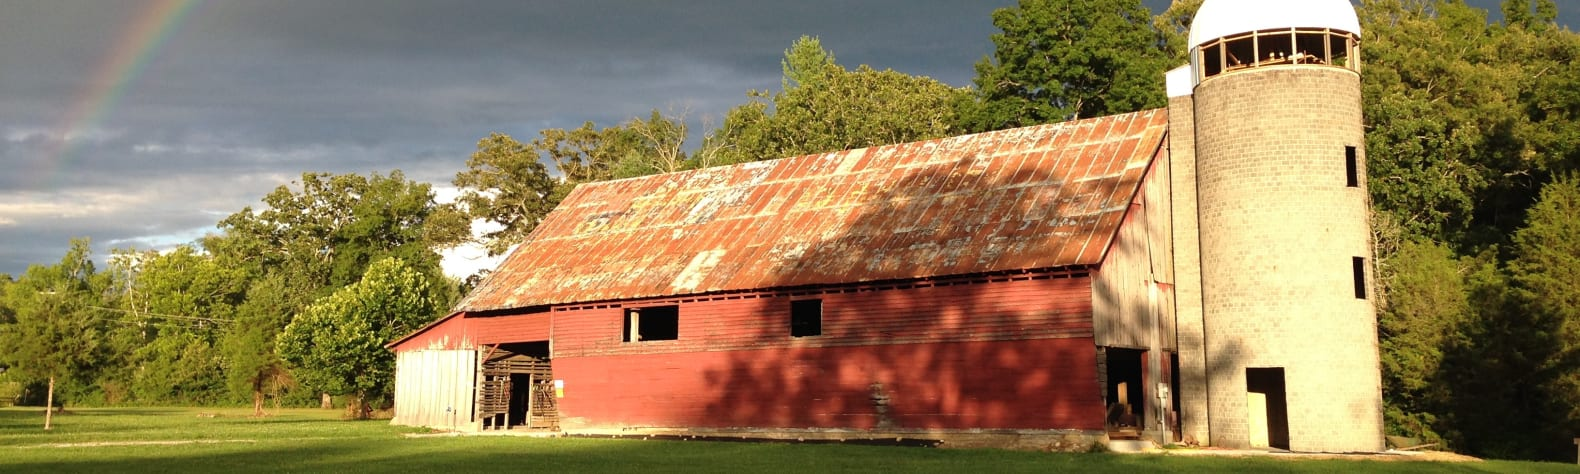 The Silo at Little River Barn